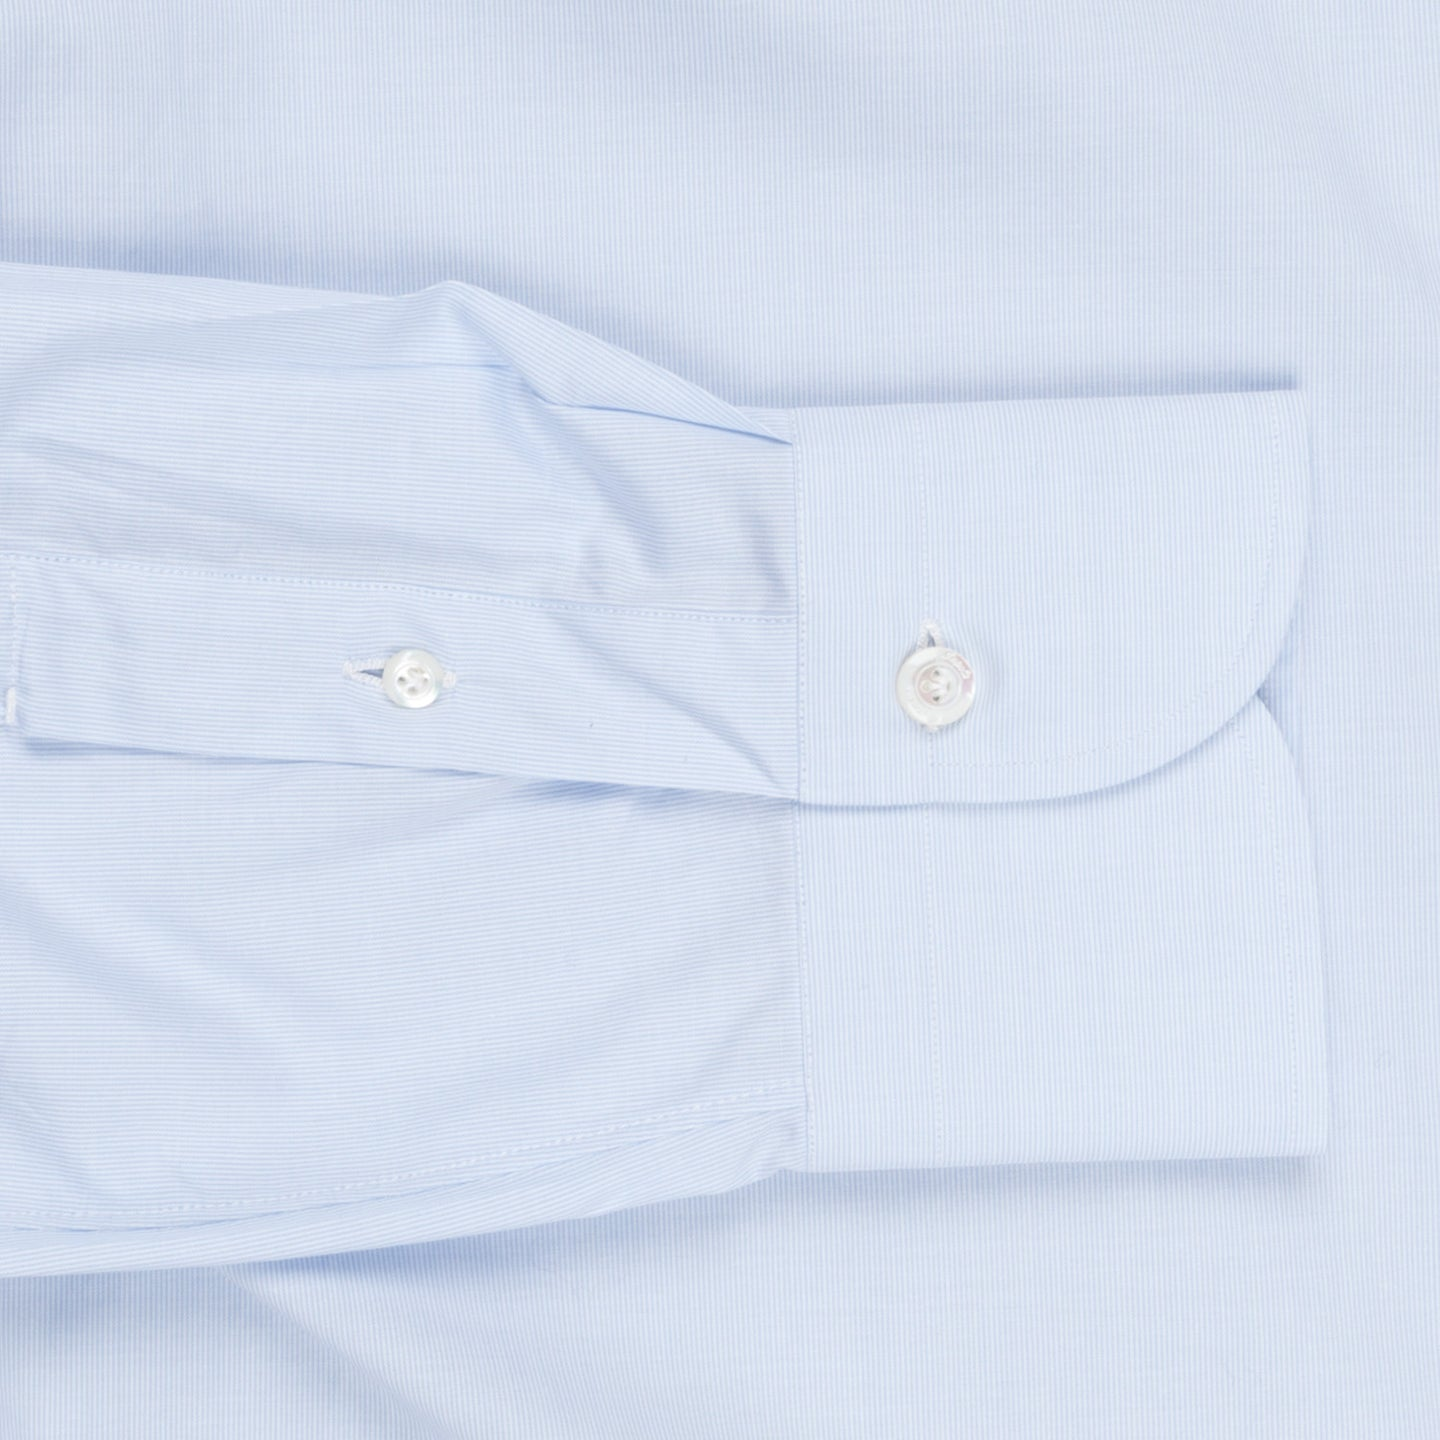 Finamore Napoli shirt Eduardo collar Light blue hairline